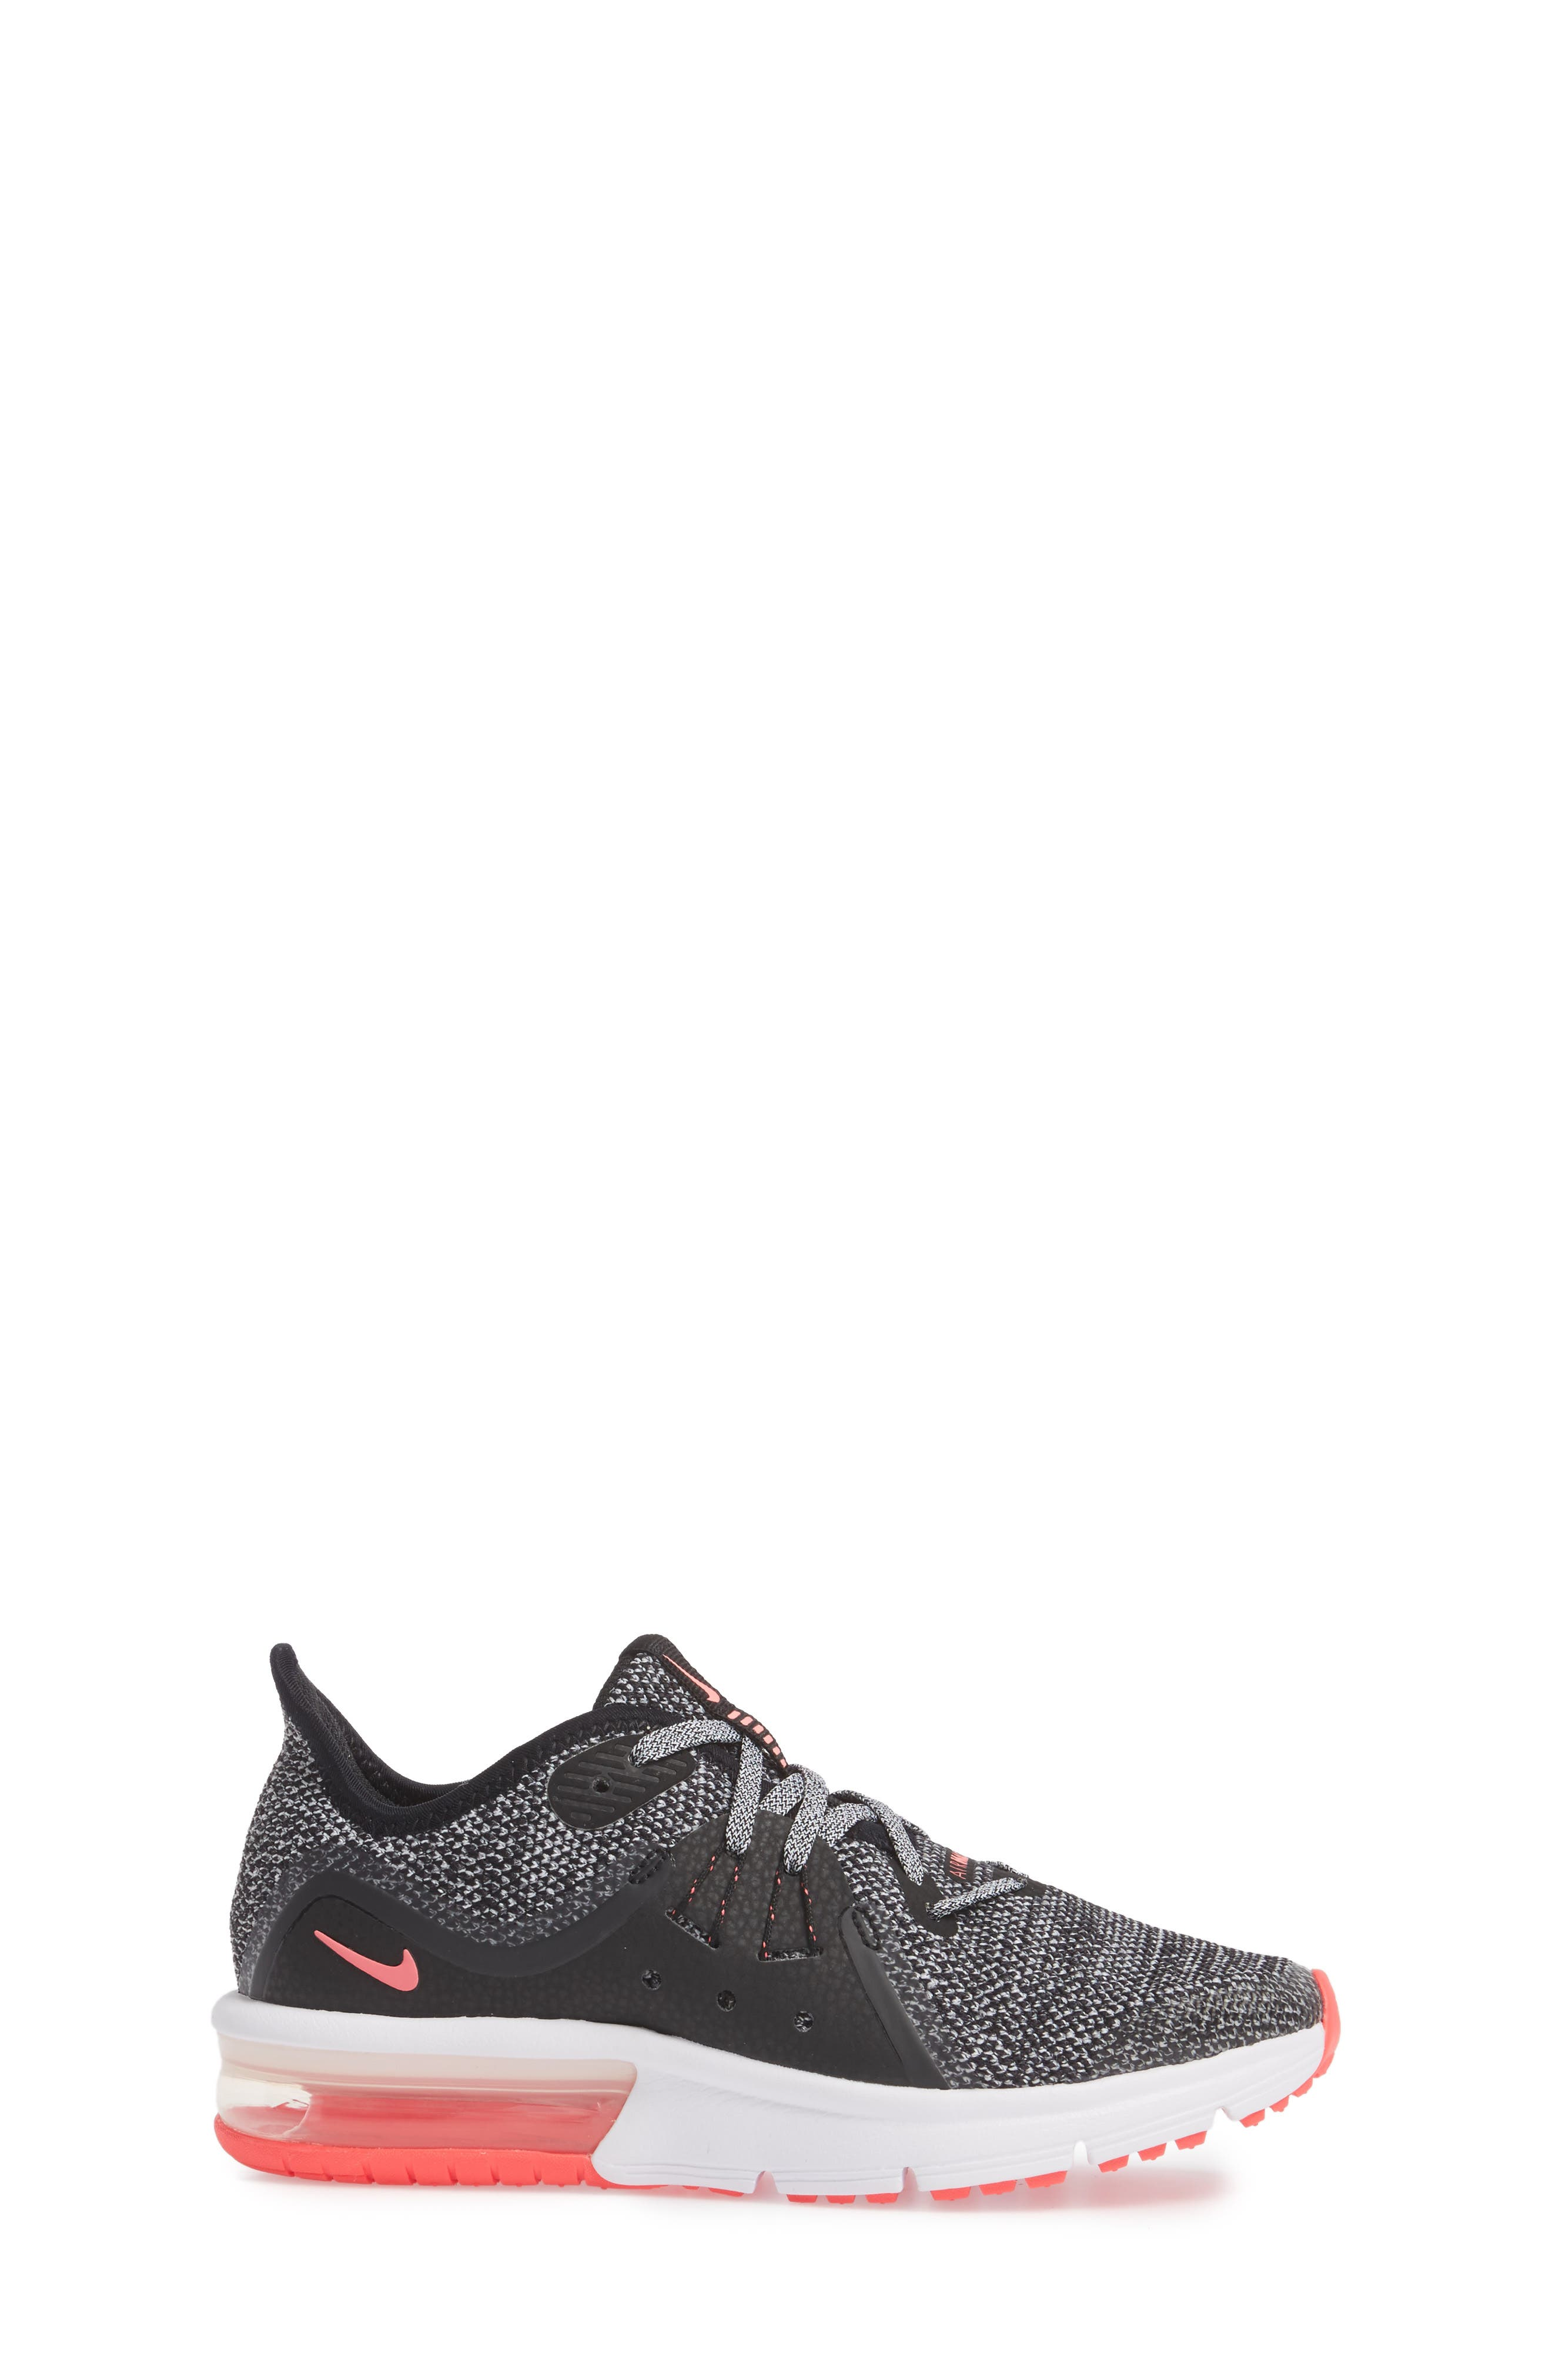 Air Max Sequent 3 GS Running Shoe,                             Alternate thumbnail 3, color,                             001